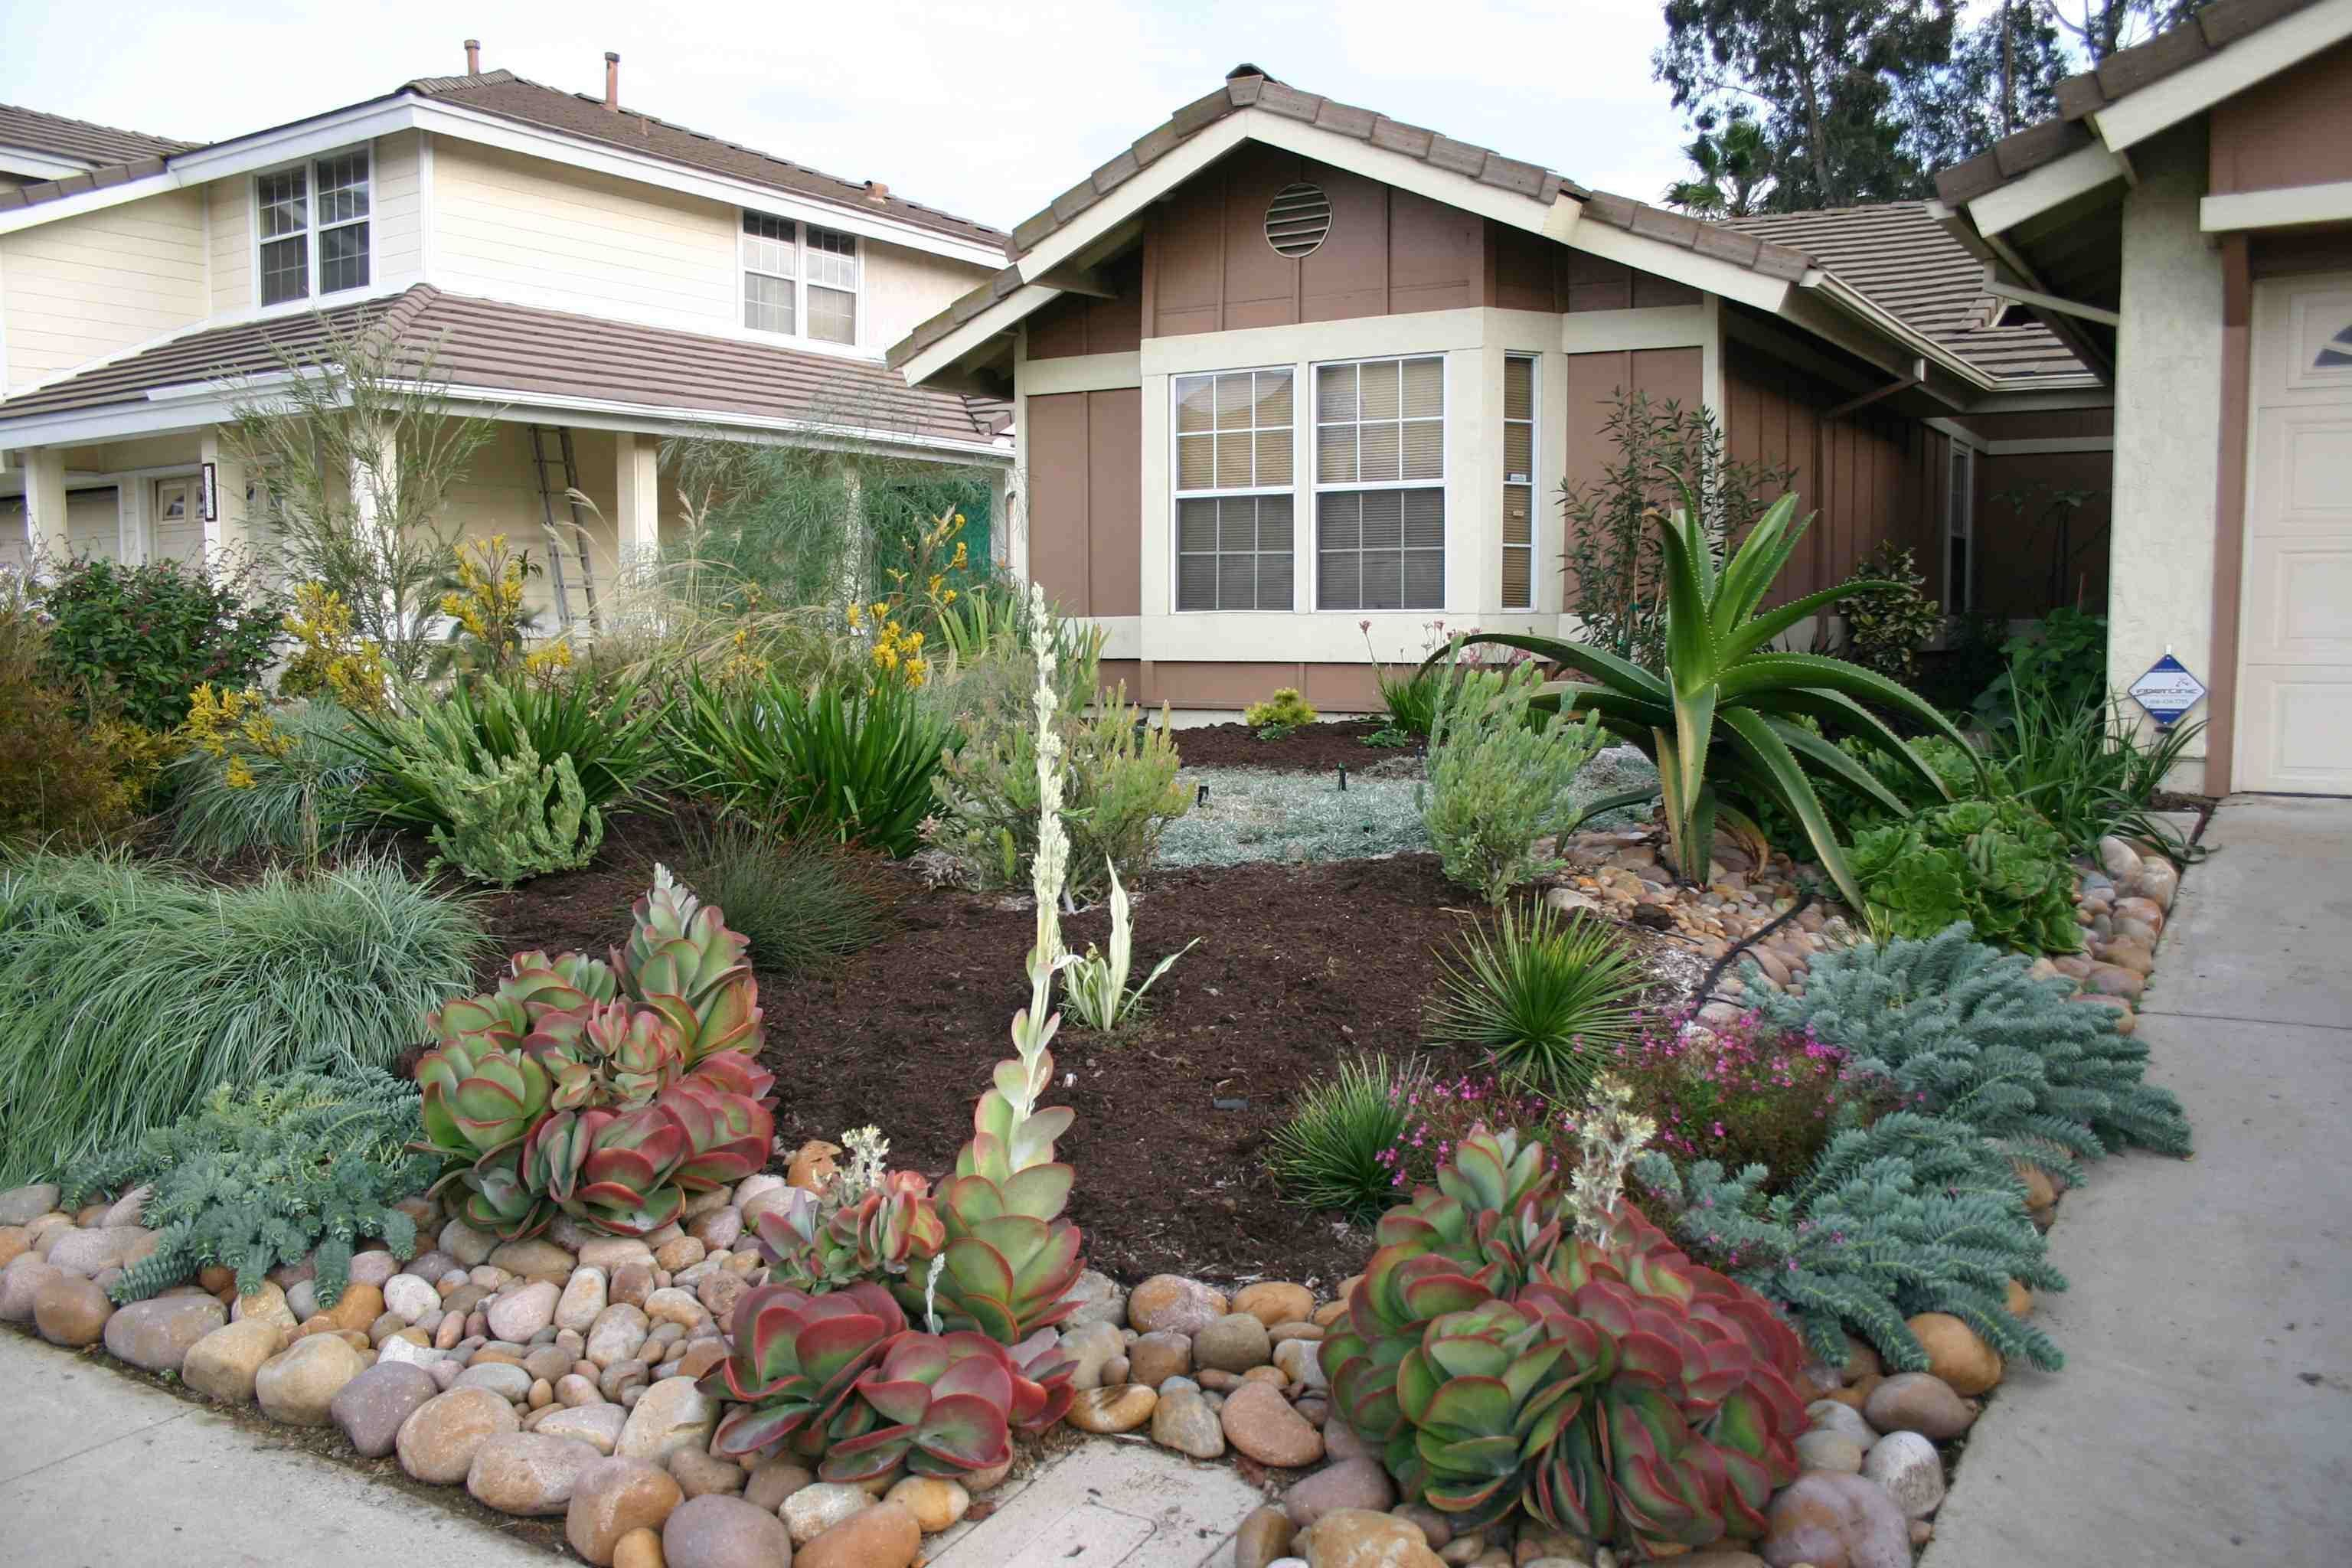 43 front yard landscaping drought tolerant xeriscaping on front yard landscaping ideas id=15804